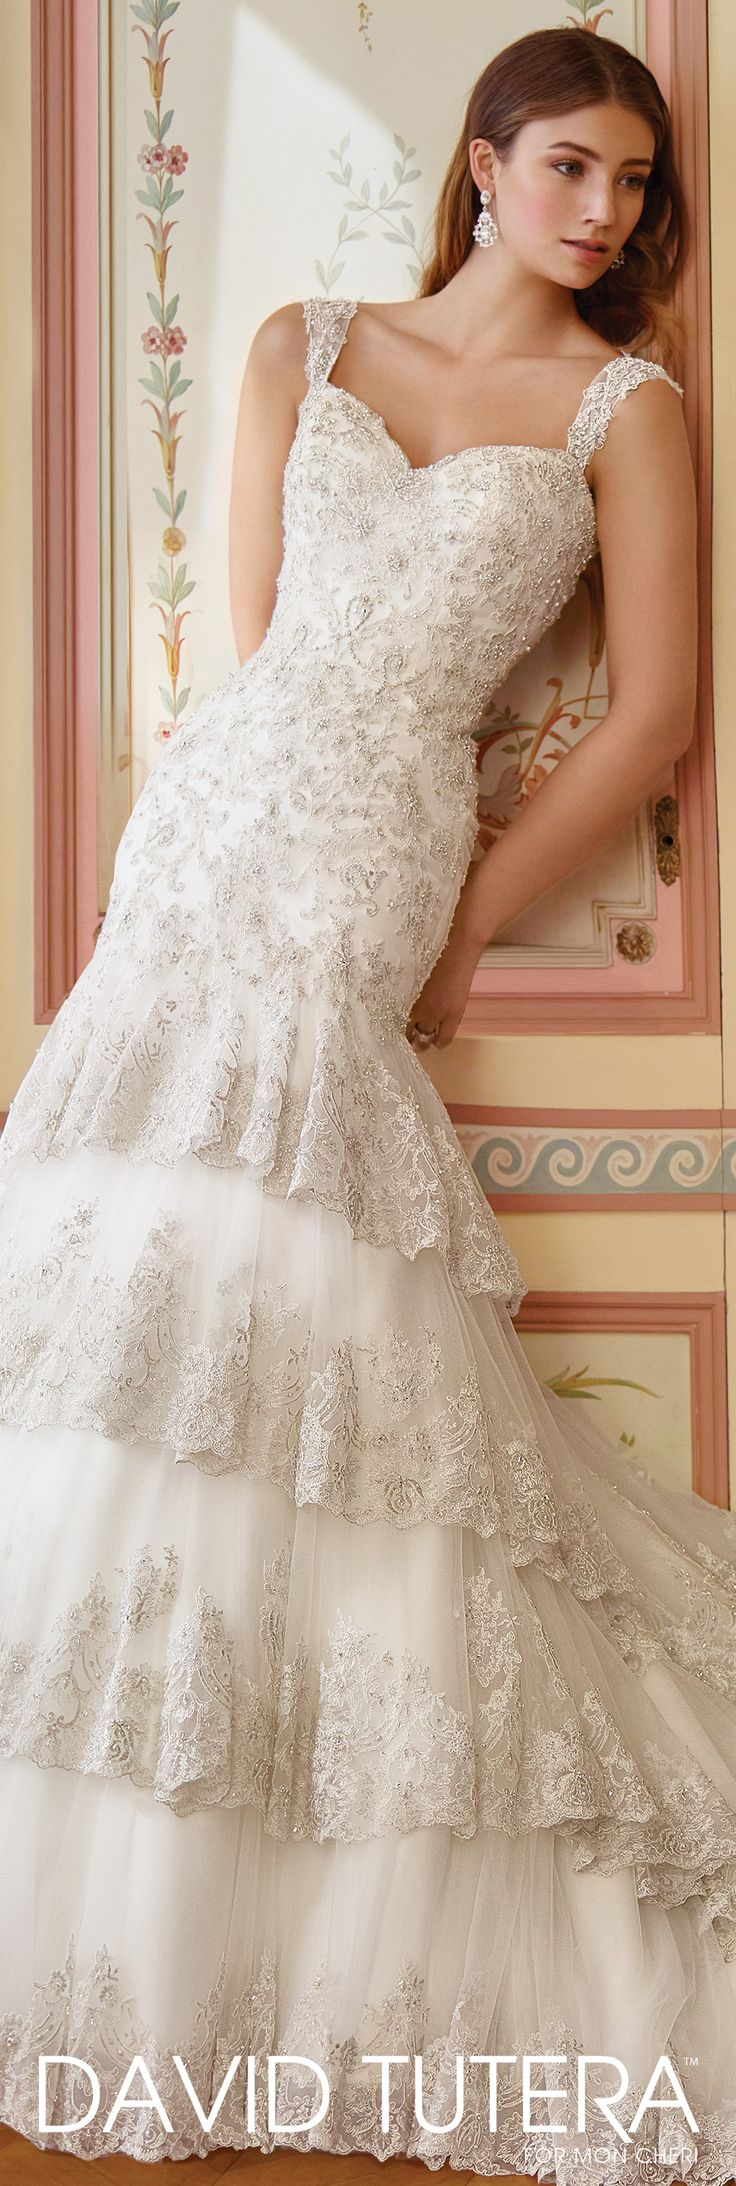 669 best images about david tutera for mon cheri on for David tutera beach wedding dresses